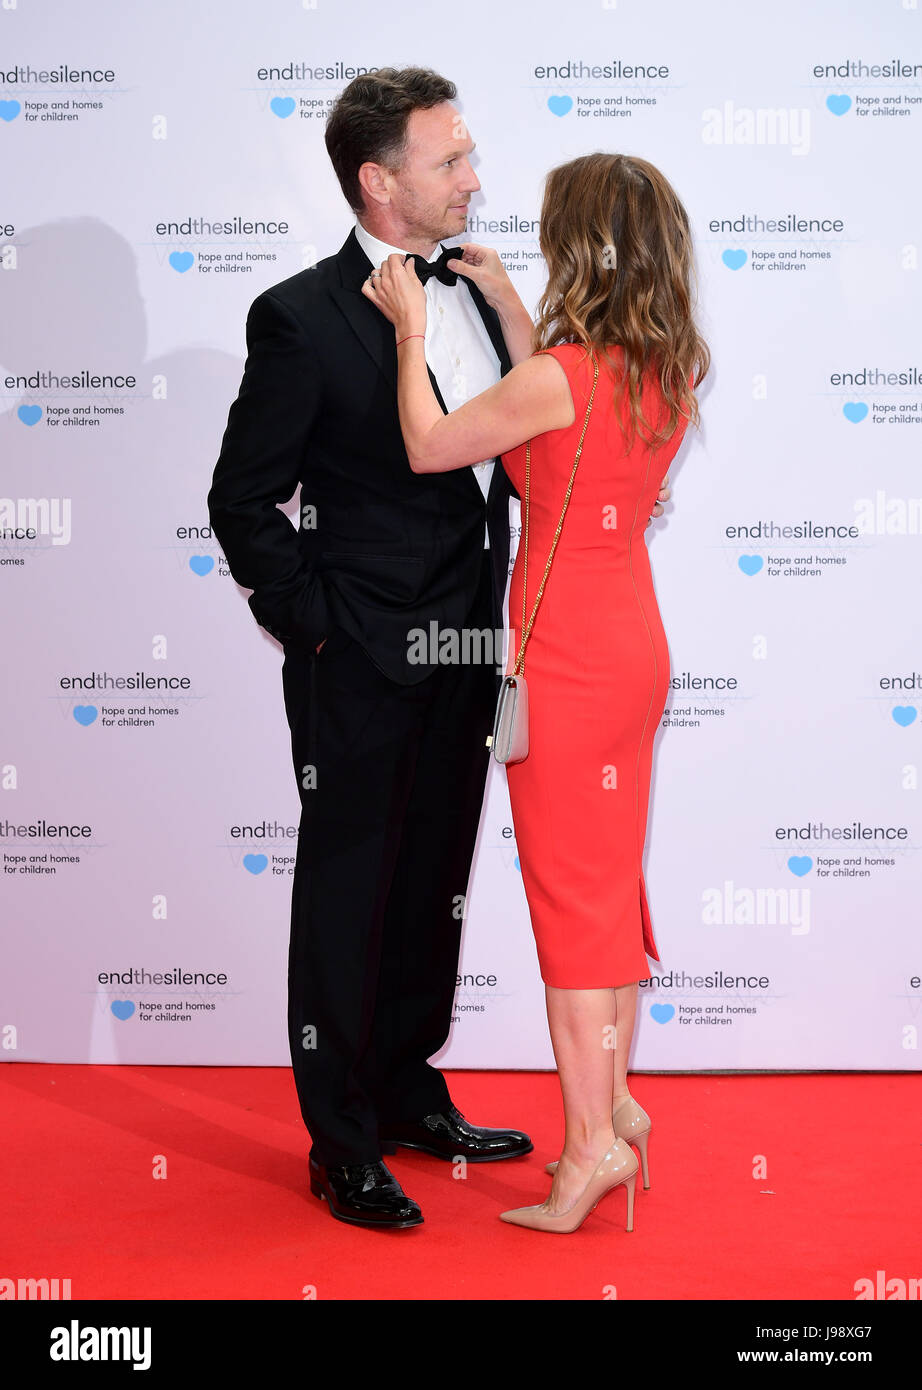 foto Geri halliwell end the silence charity fundraiser in london uk